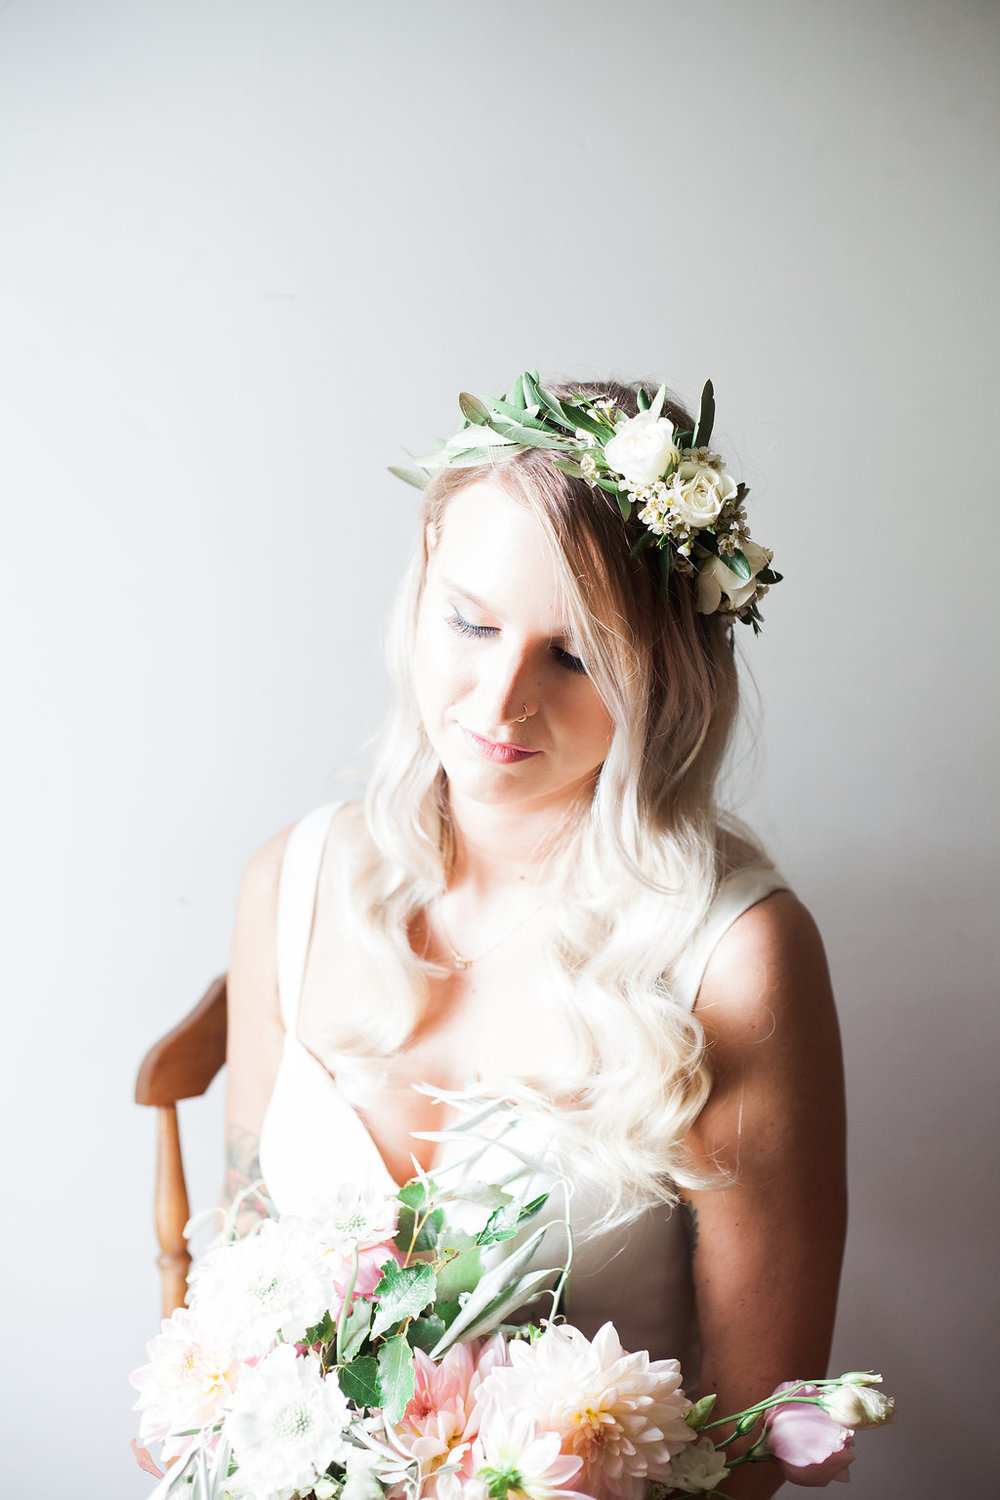 Peaceful Wedding Ideas - Winnipeg Wedding Flowers